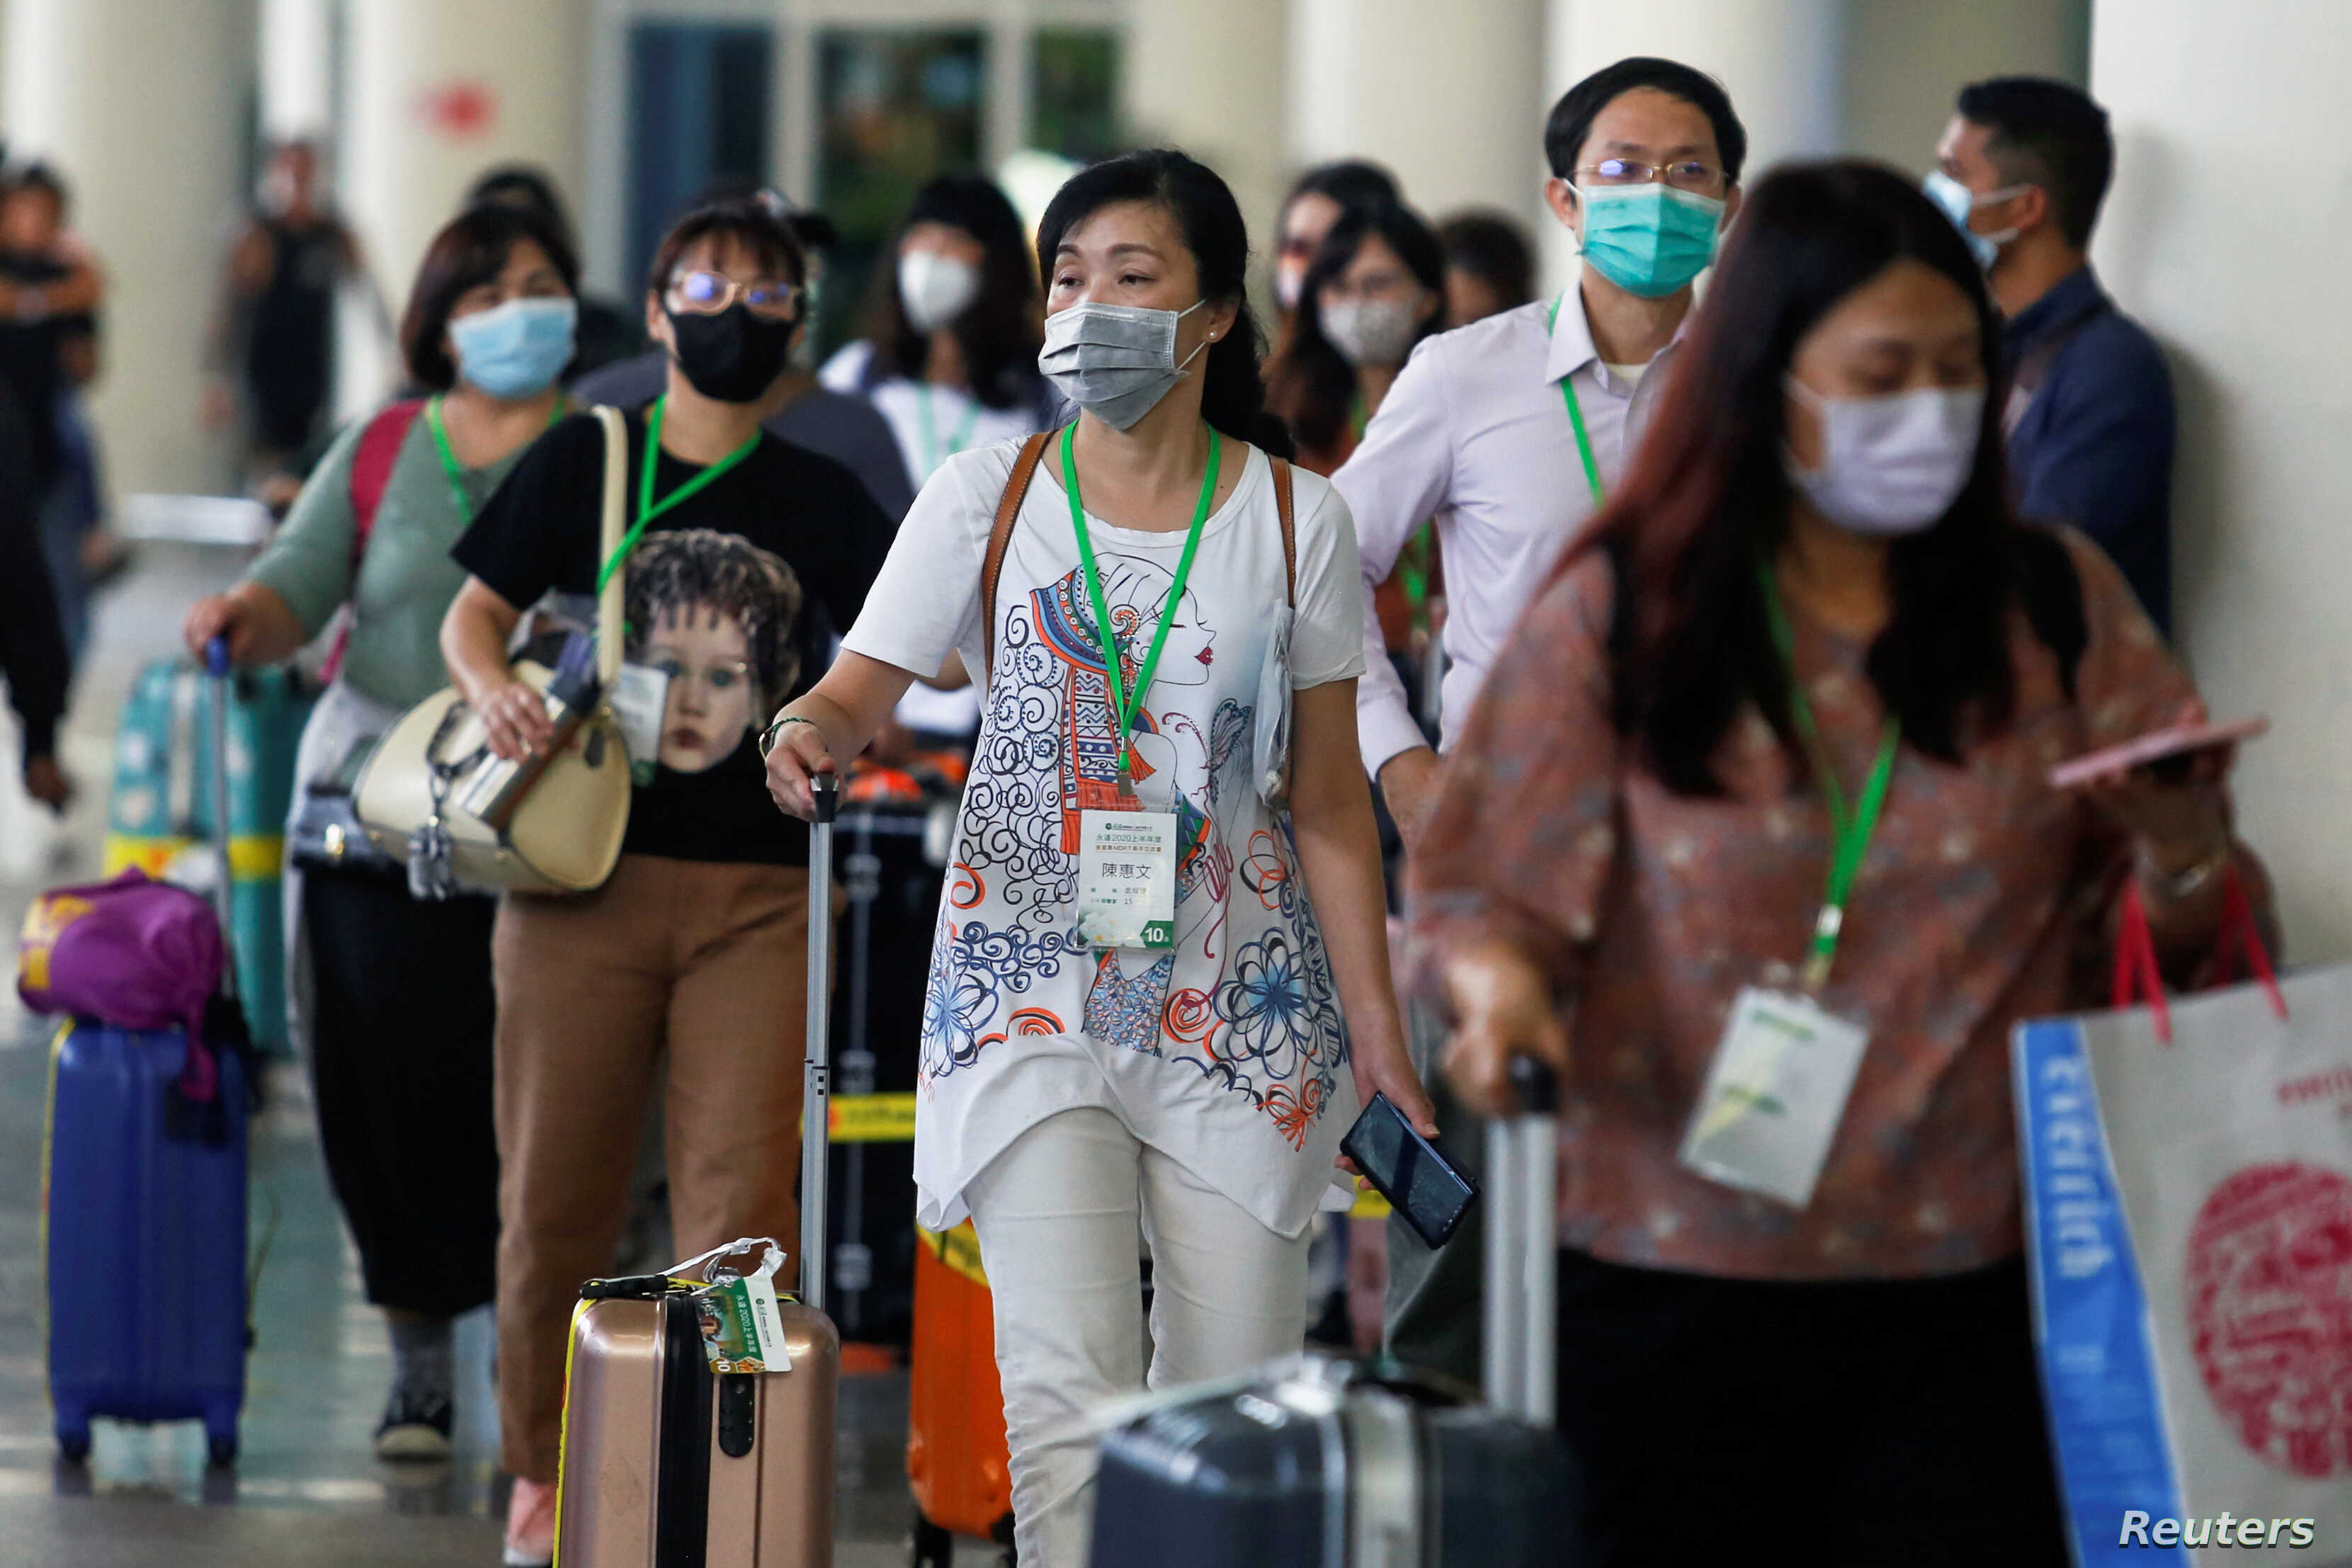 Experts Warn Coronavirus May Be Spreading Undetected in Indonesia ...